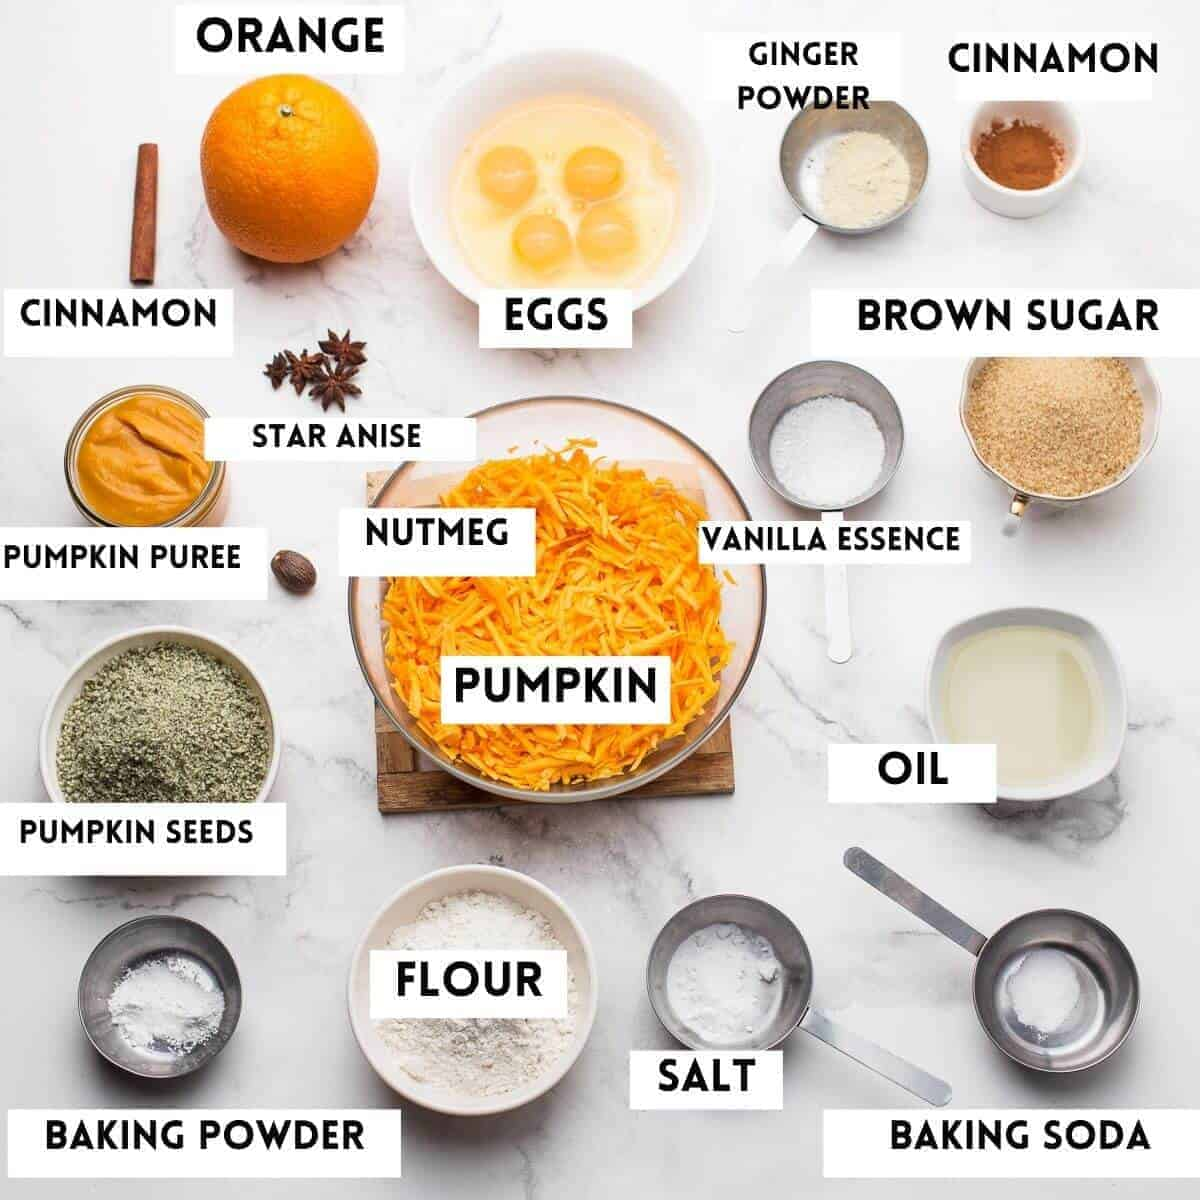 ingredients needed to cook the cake